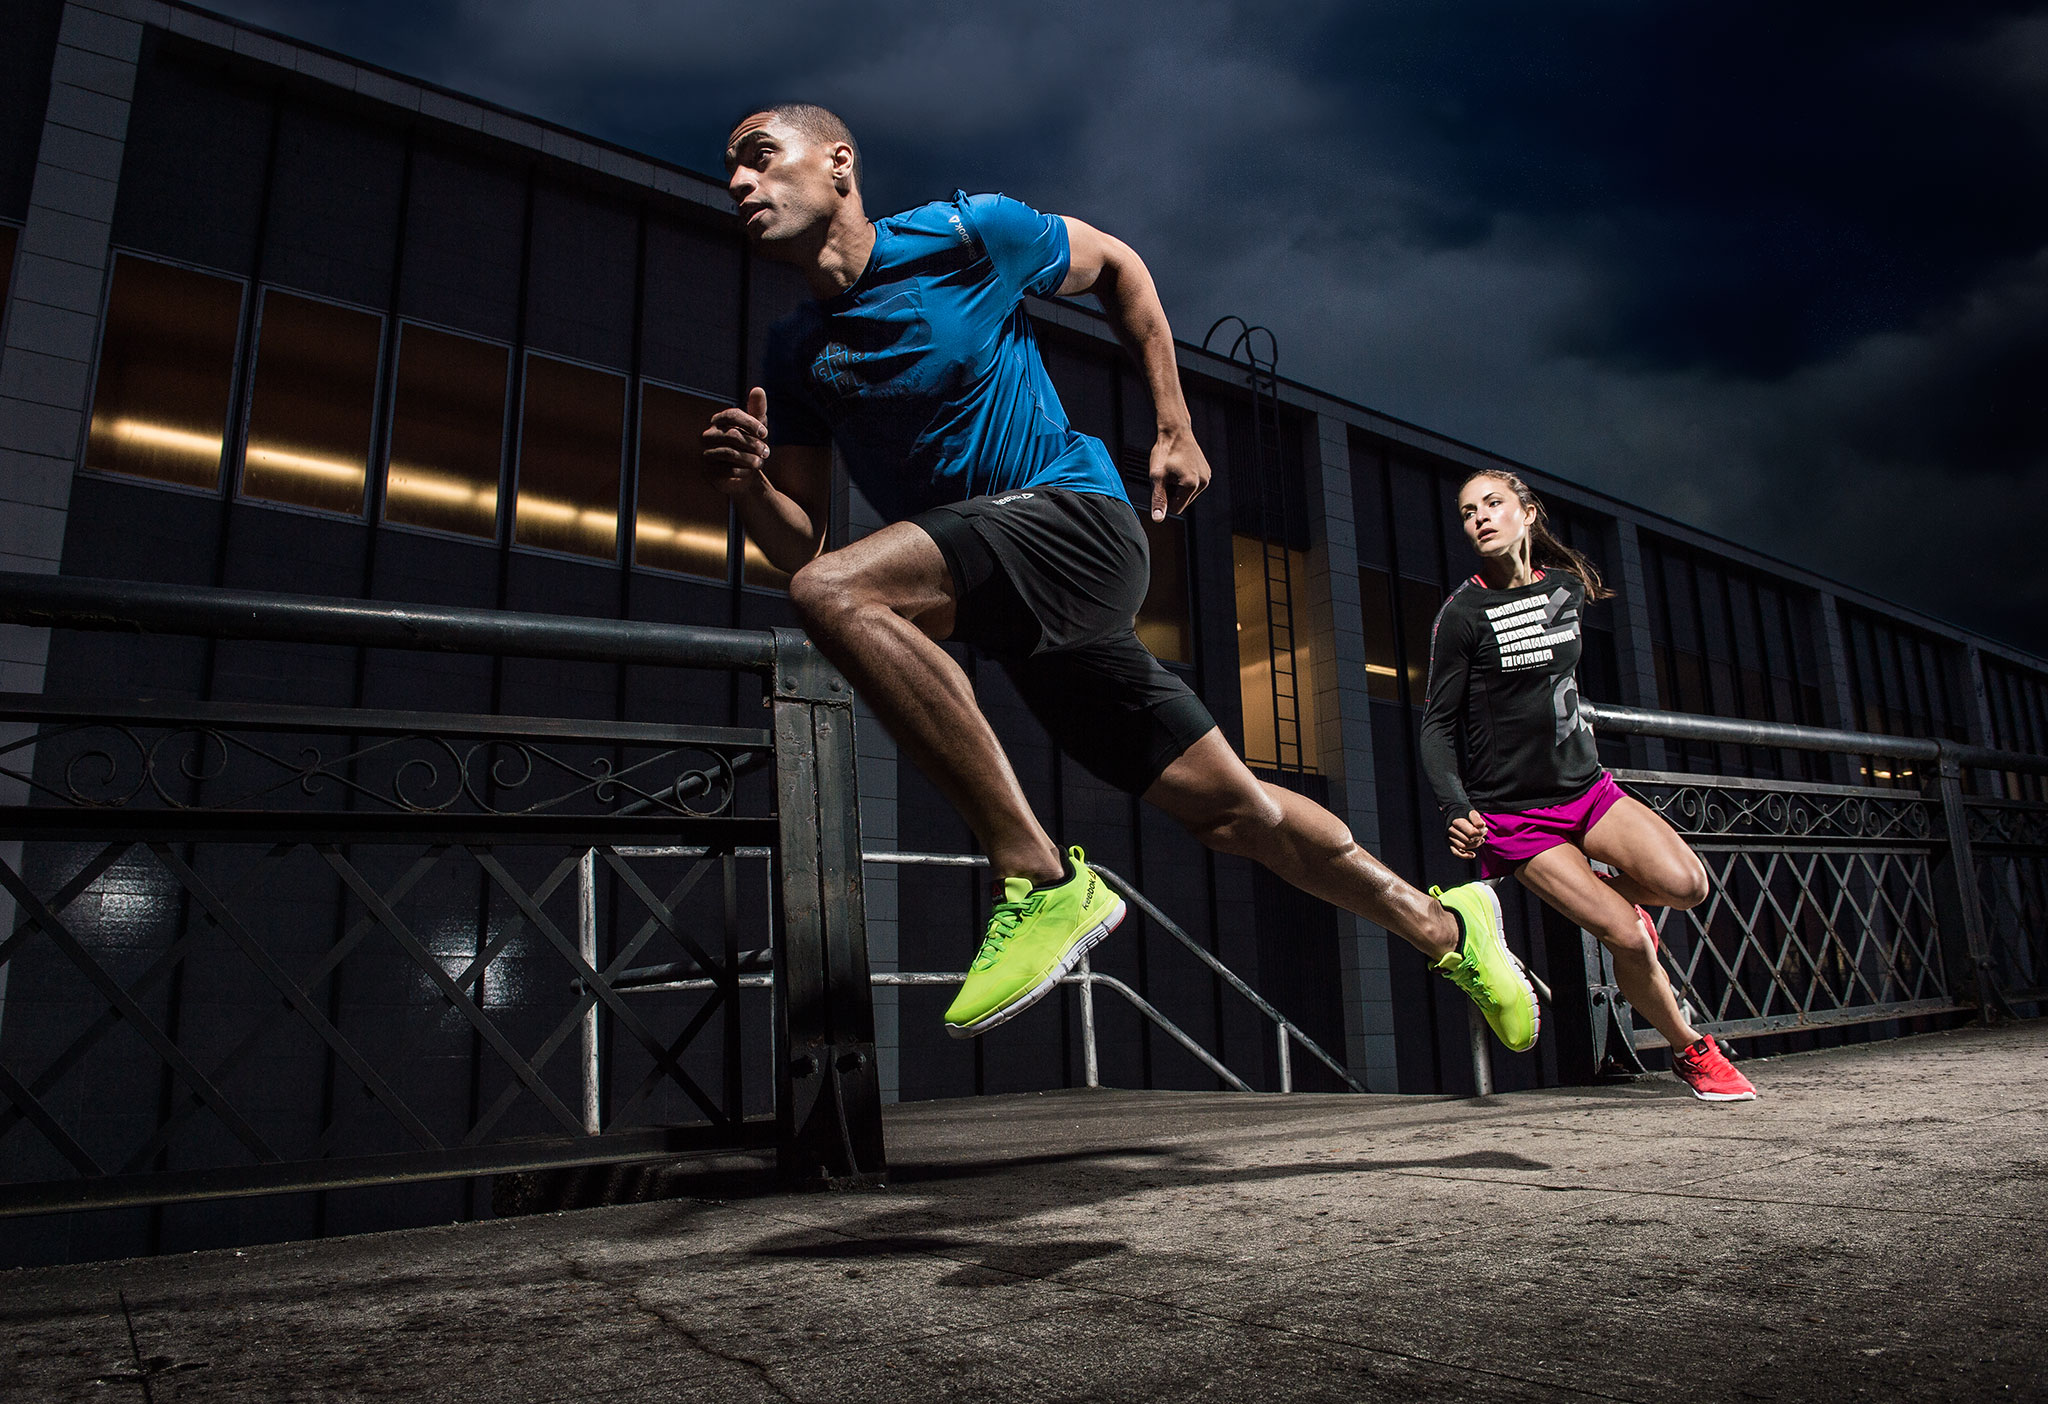 City running for Reebok | Zach Ancell Photography